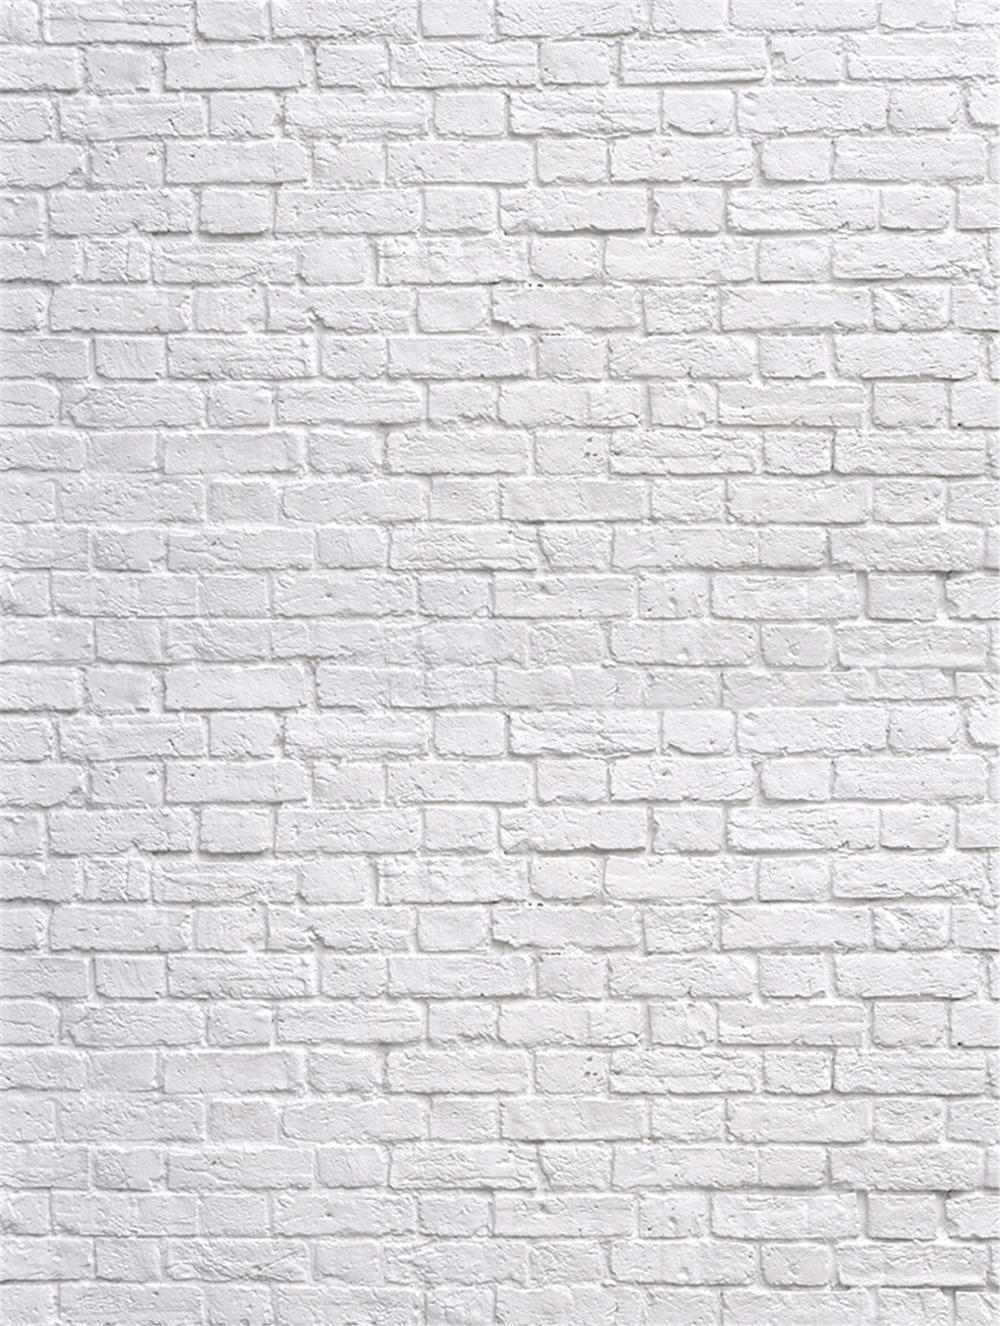 Kate White Brick Wall Backgrounds For Photo Studio 10ft Wedding Retro Background Photography Wasahble Seamless Backdrop In From Consumer